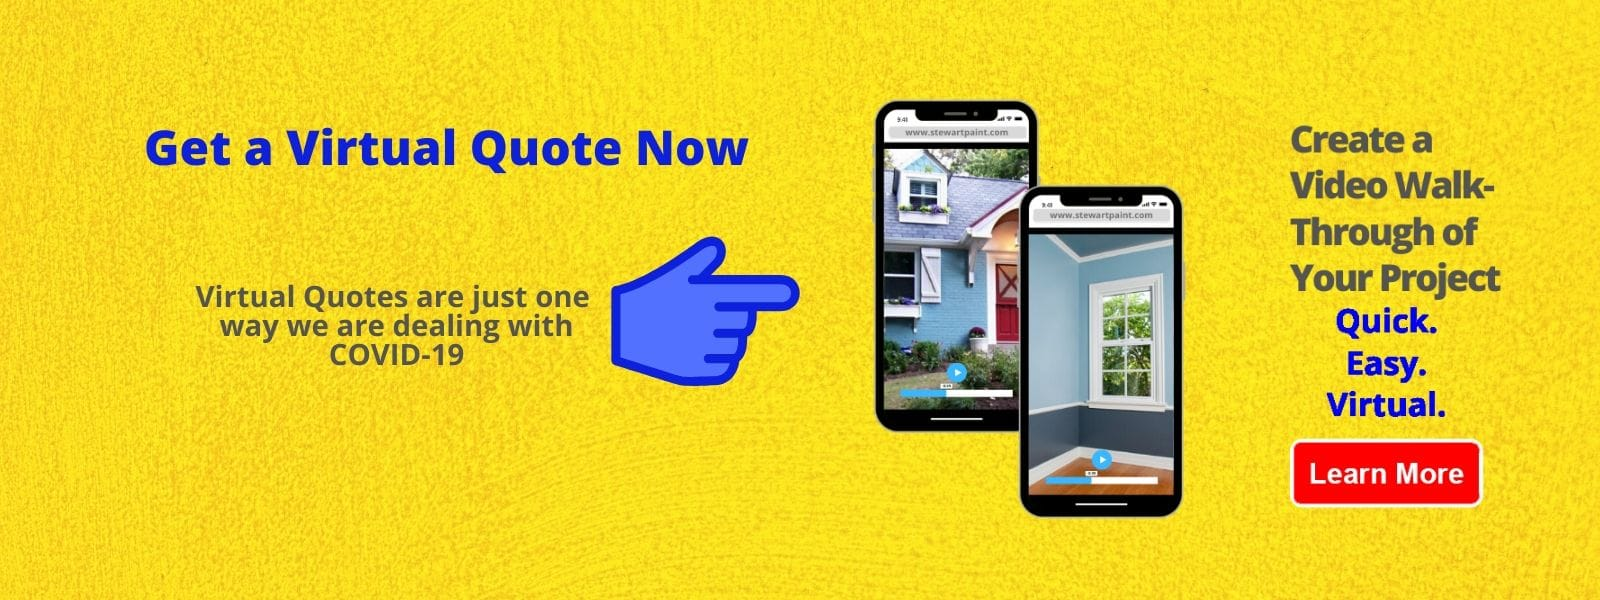 Get a Virtual Quote from Stewart Painting